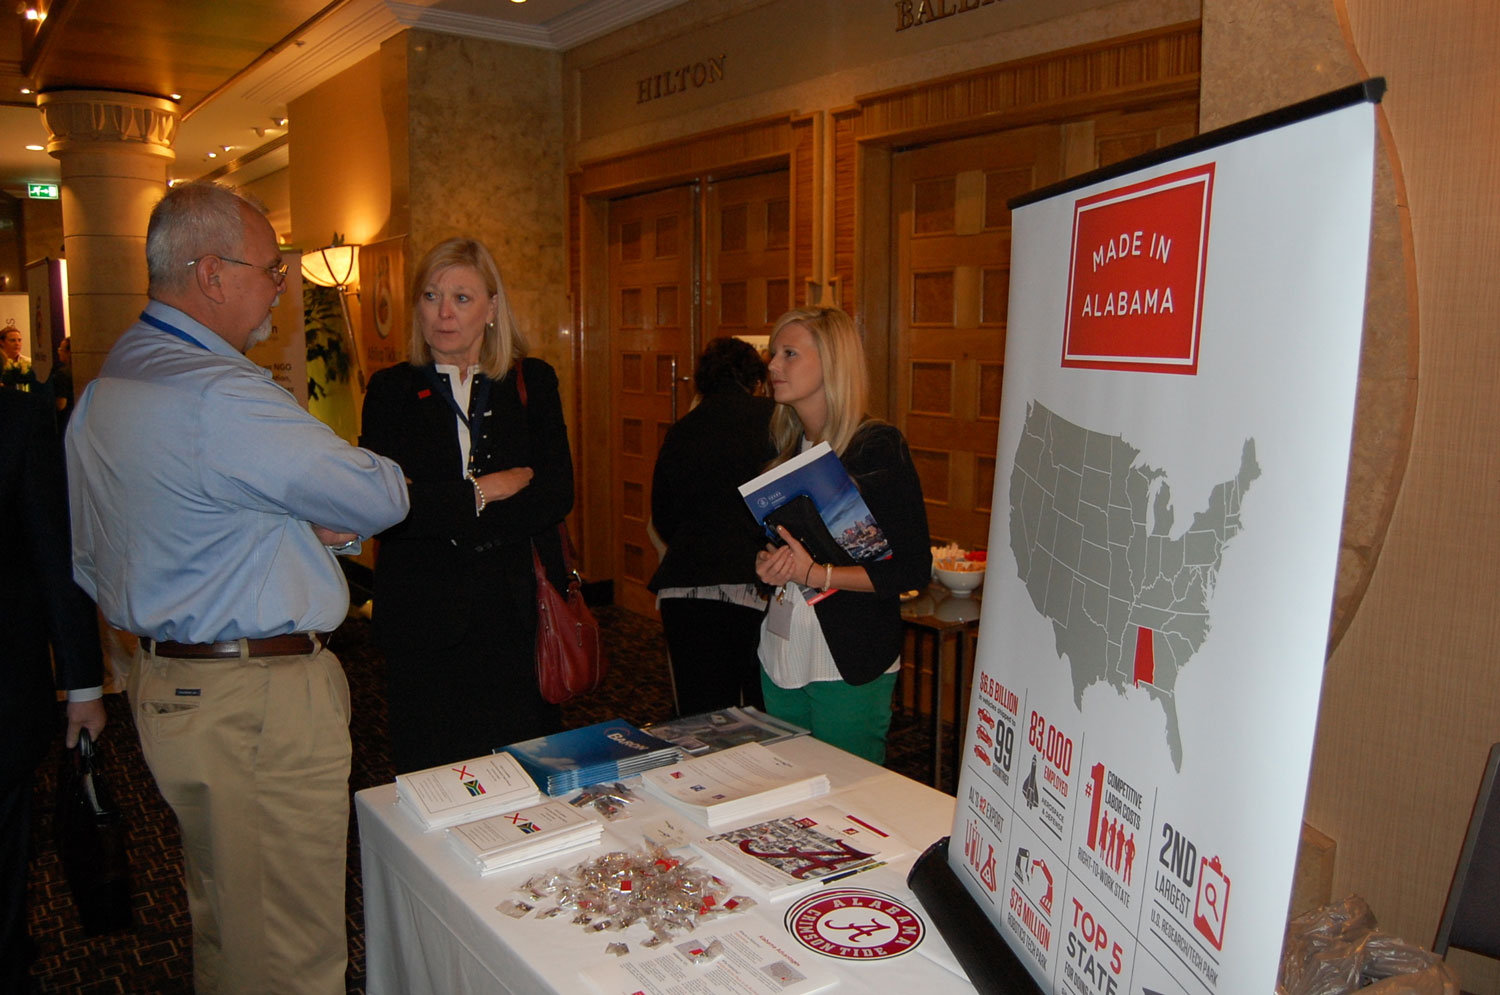 Commerce's Hilda Lockhart, center, chats at the Made In Alabama booth at the 2015 Trade Winds conference in South Africa.